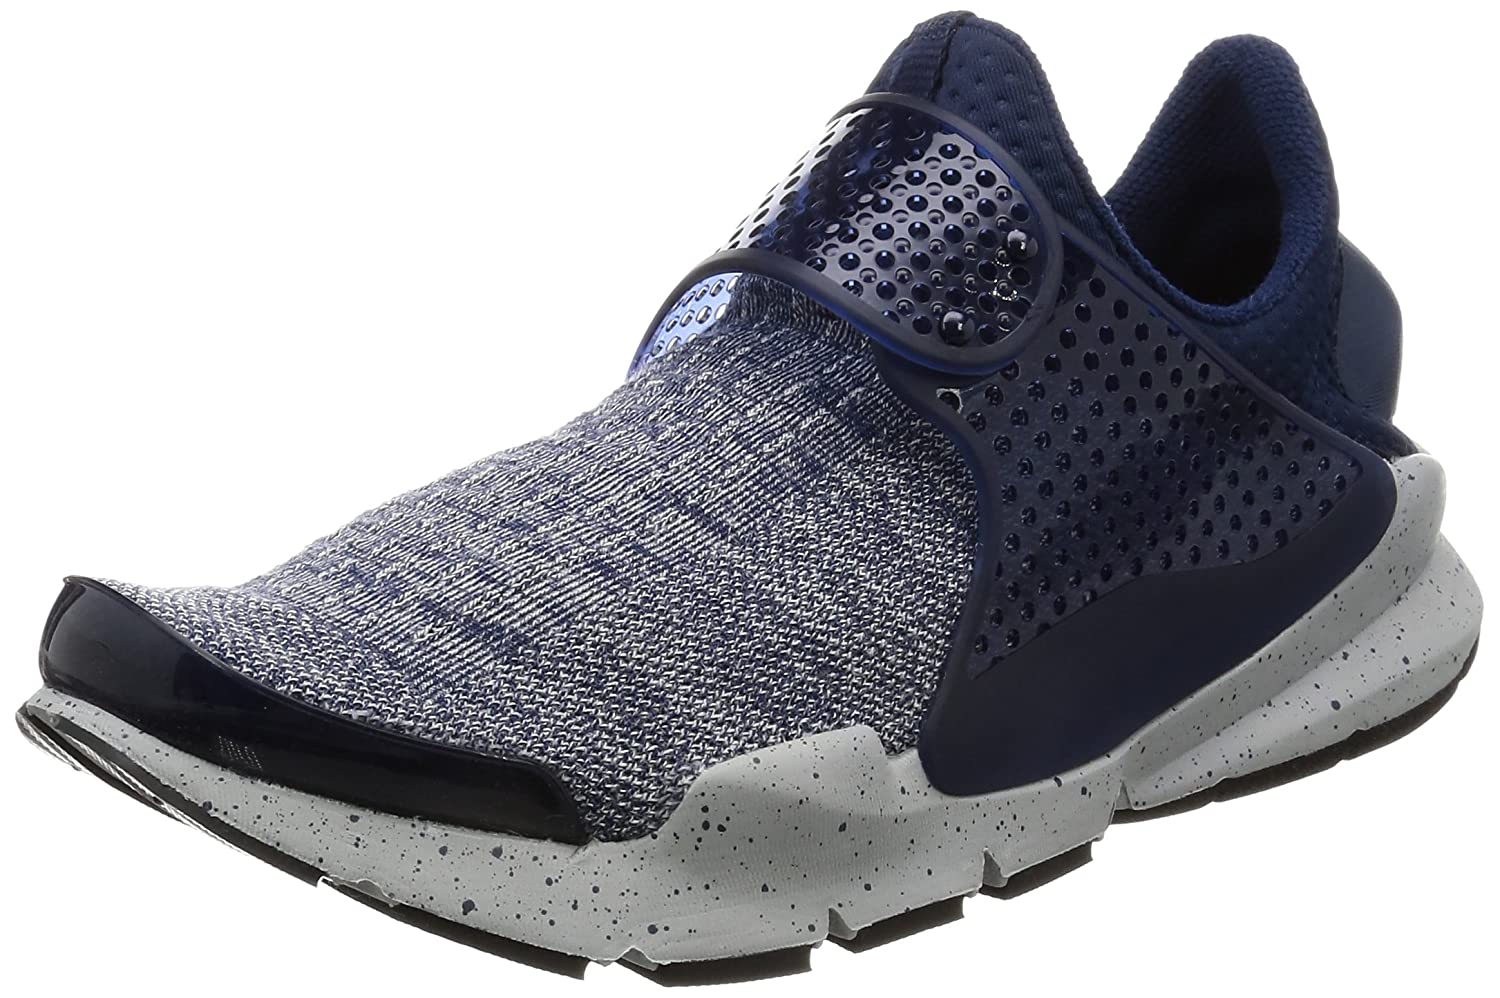 Nike 859553-400, Zapatillas de Trail Running para Hombre 46 EU|Azul (Midnight Navy / Midnight Navy)